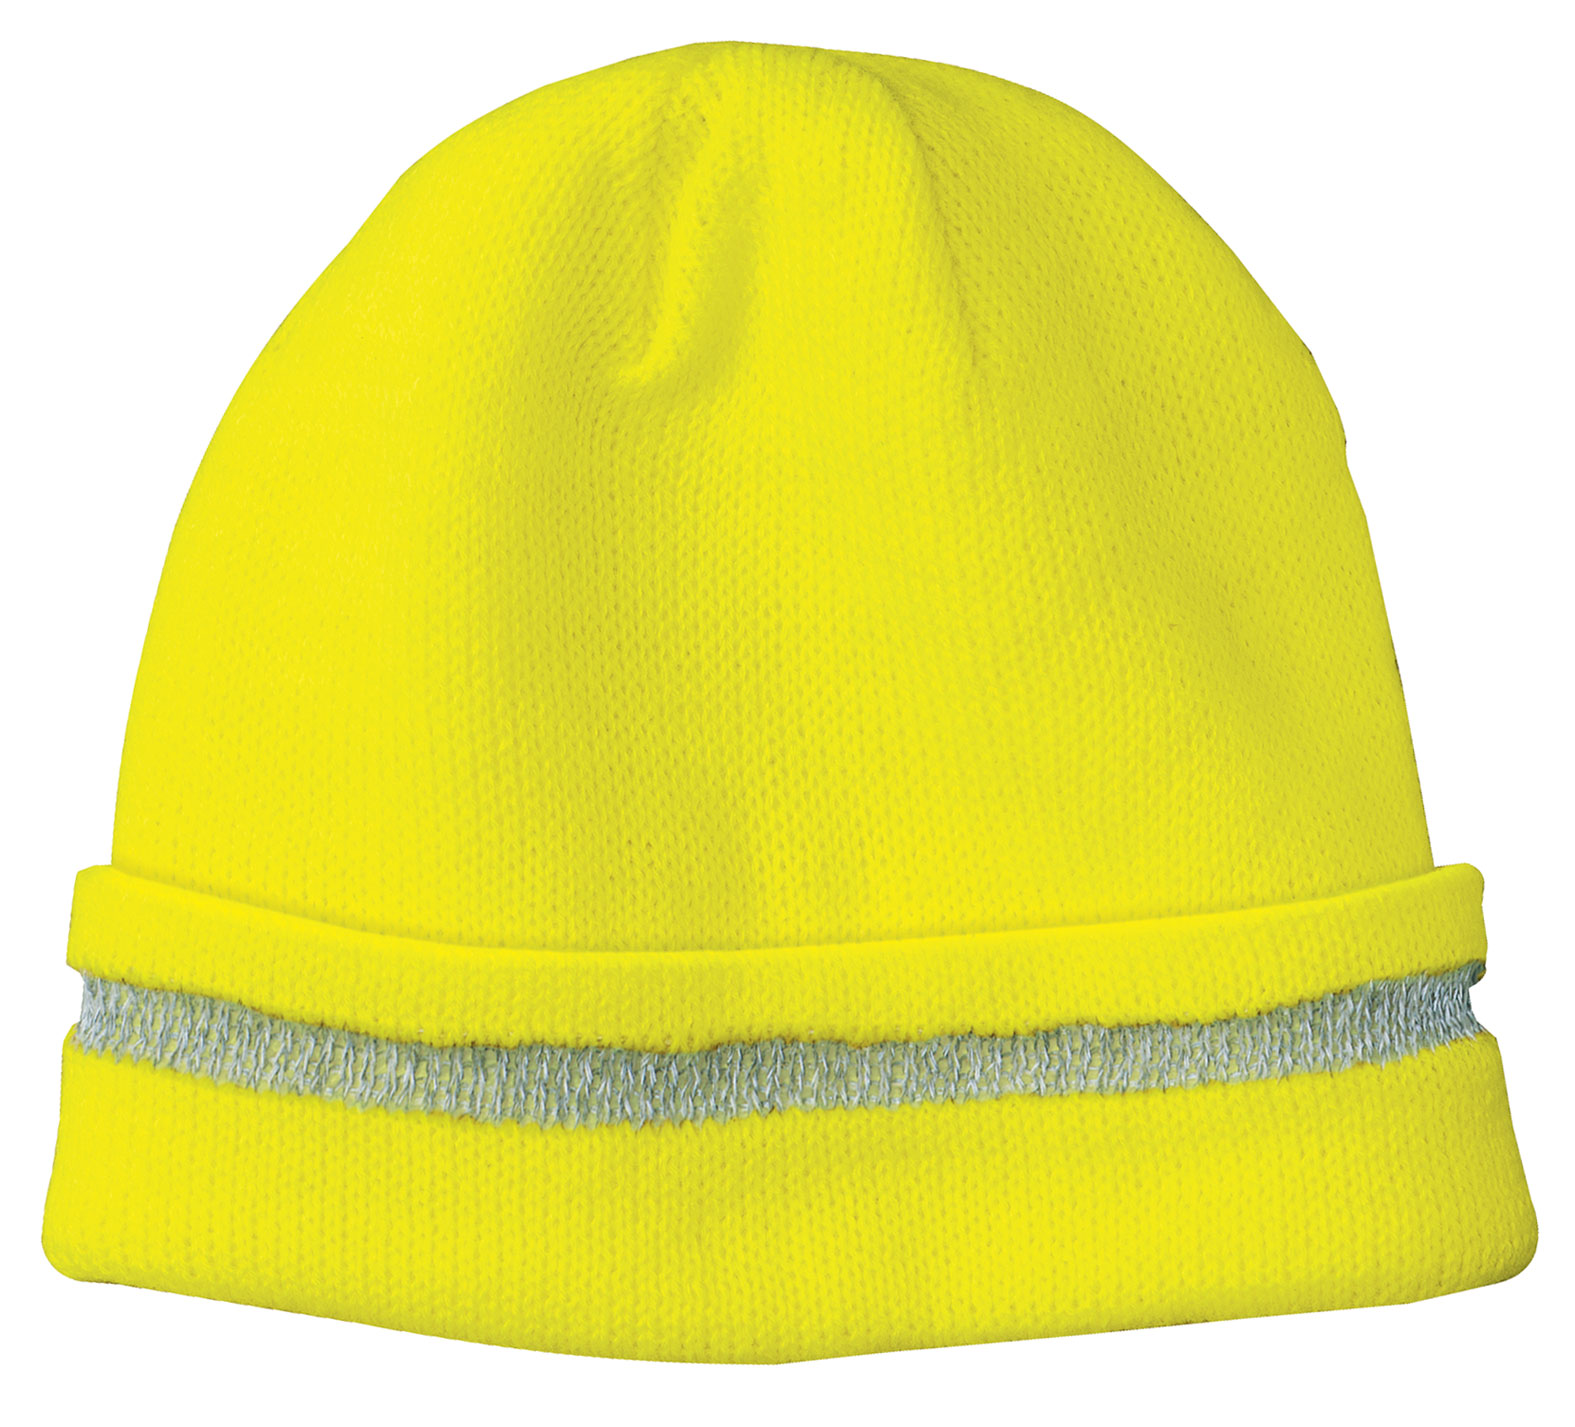 Safety Beanie with Reflective Stripe